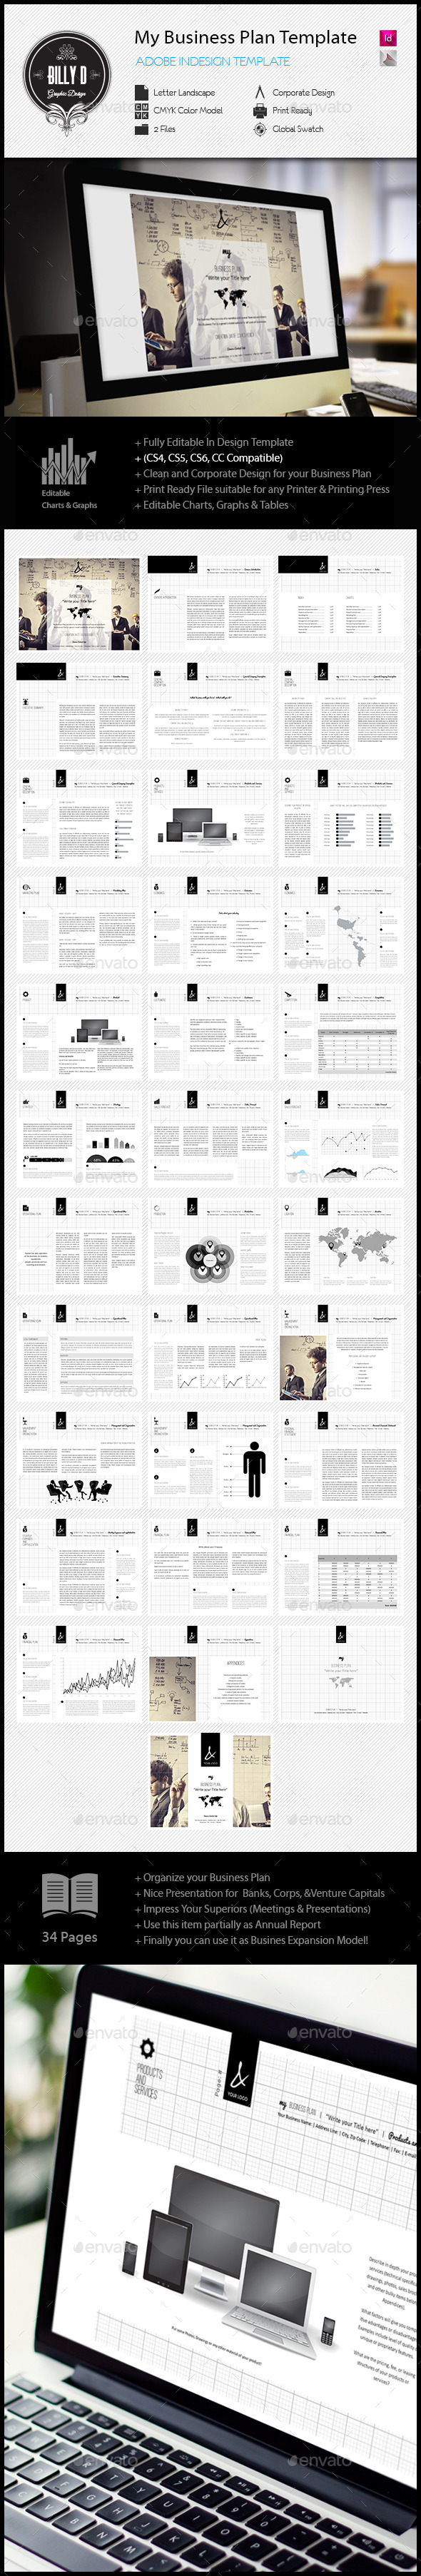 GraphicRiver My Business Plan Digital Template 11912227